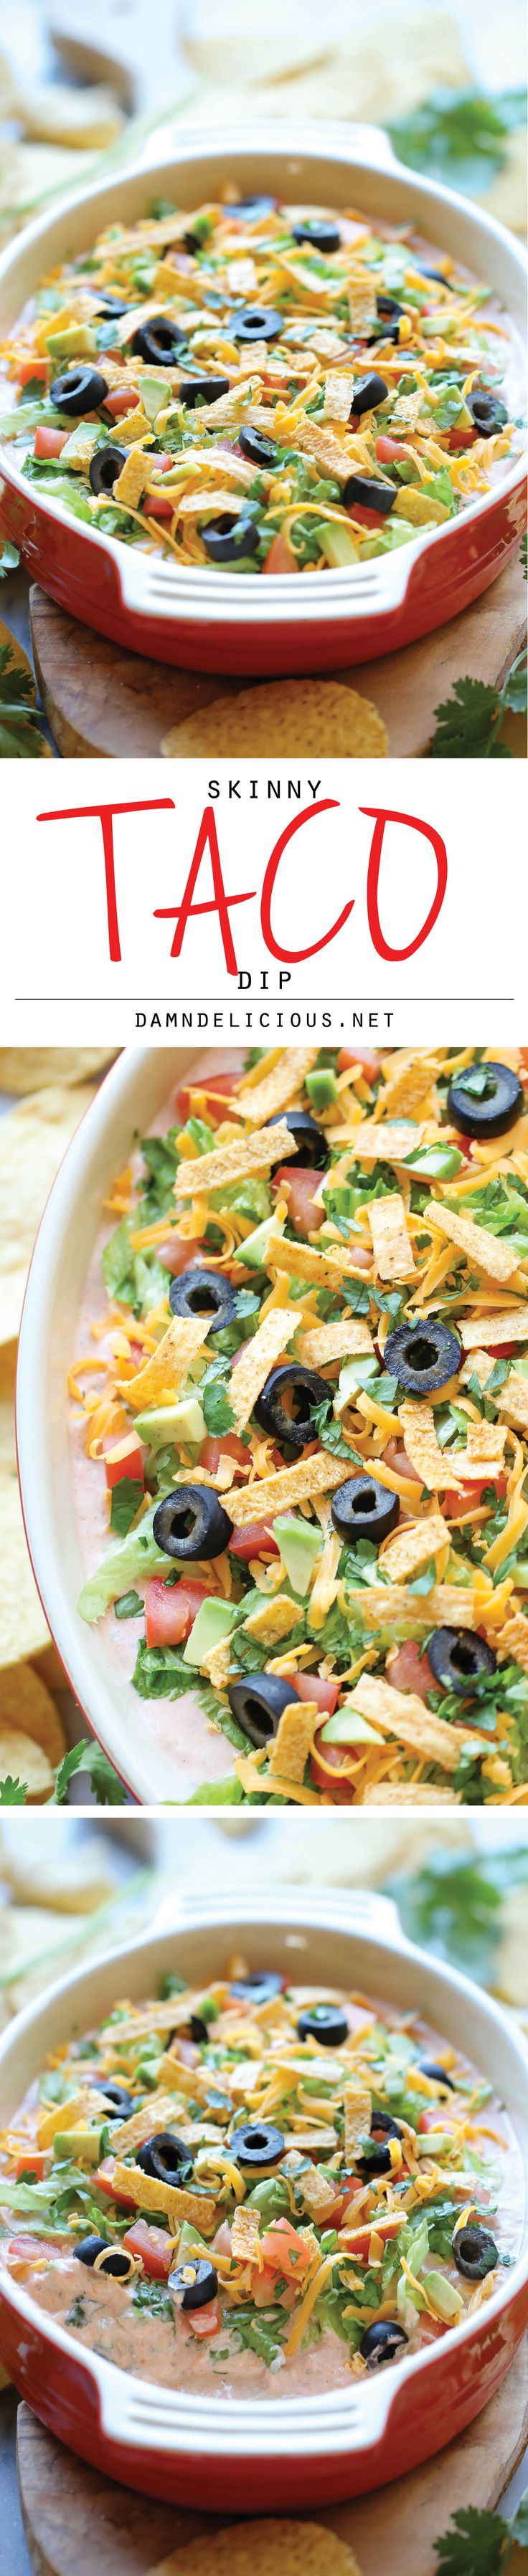 Skinny Taco Dip ~ Skip the guilt in this lightened up, super easy, 10-min taco dip. Perfect as a party appetizer for game day!